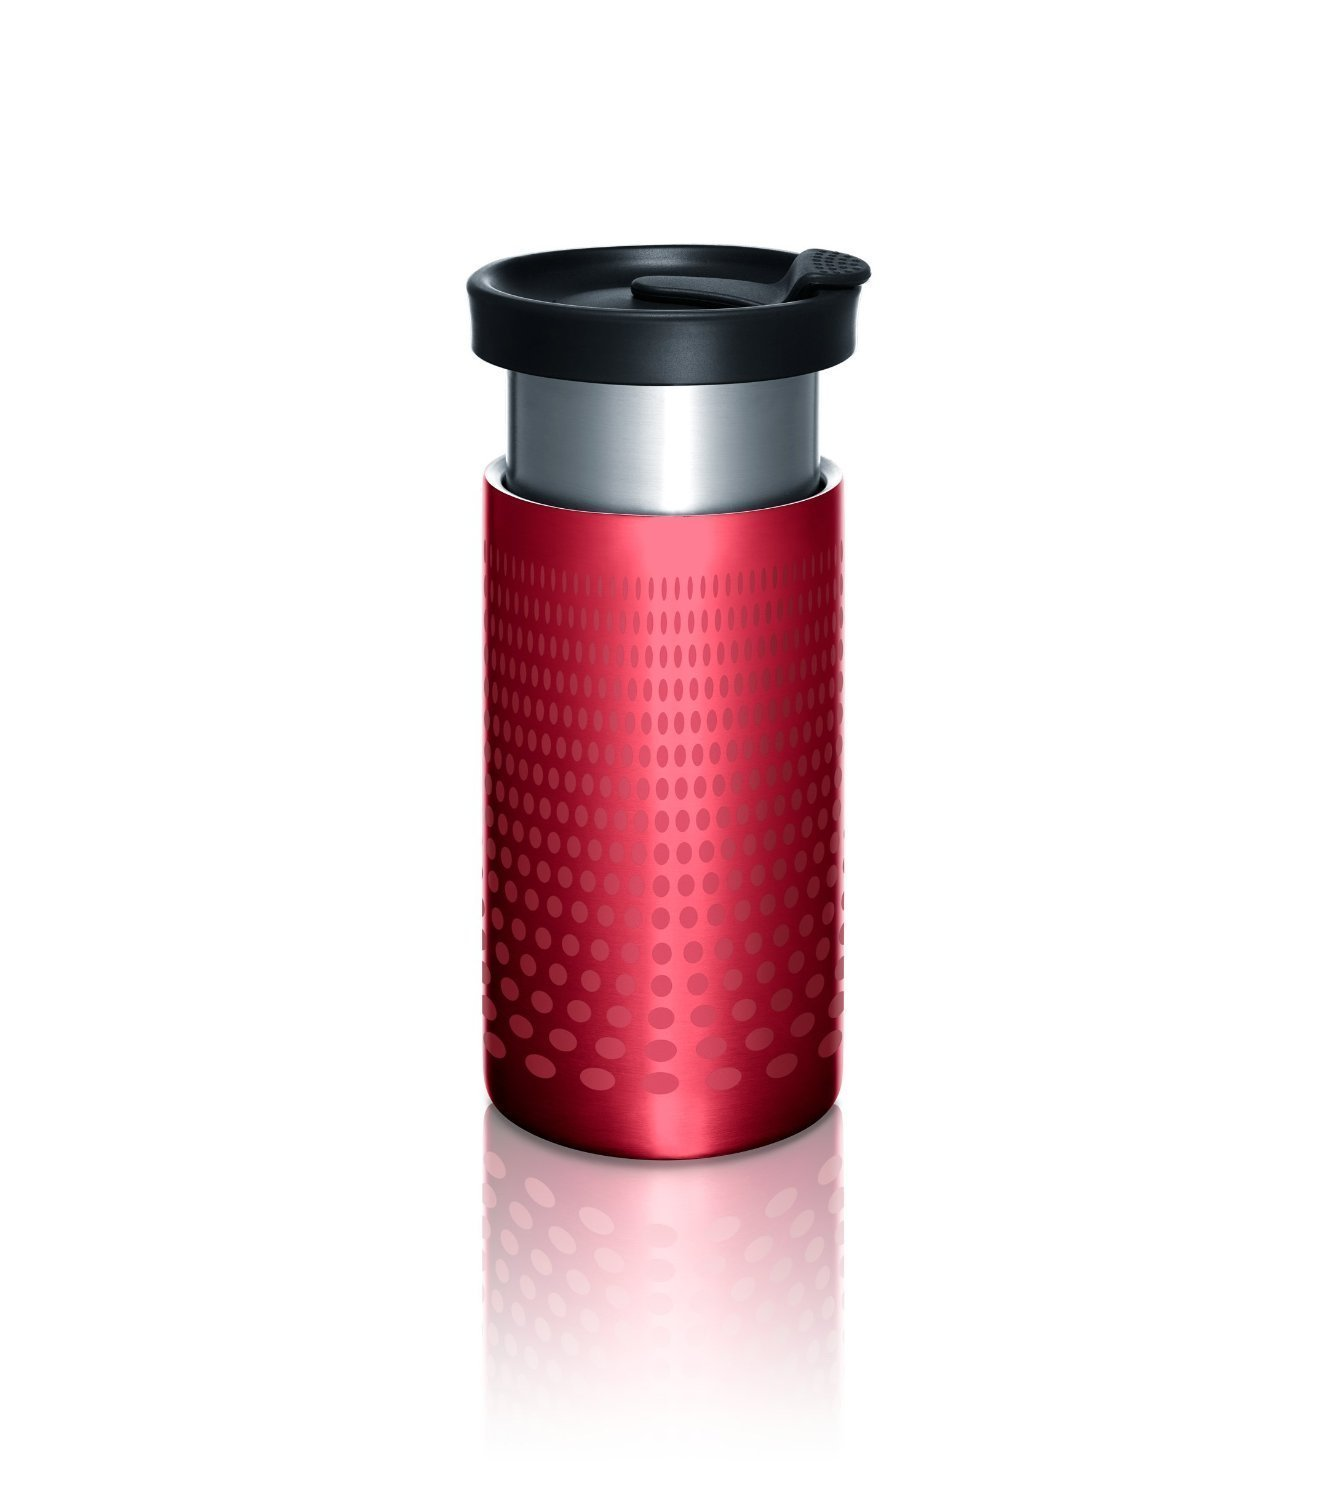 Presse by bobble, On The Go Brewer, Red